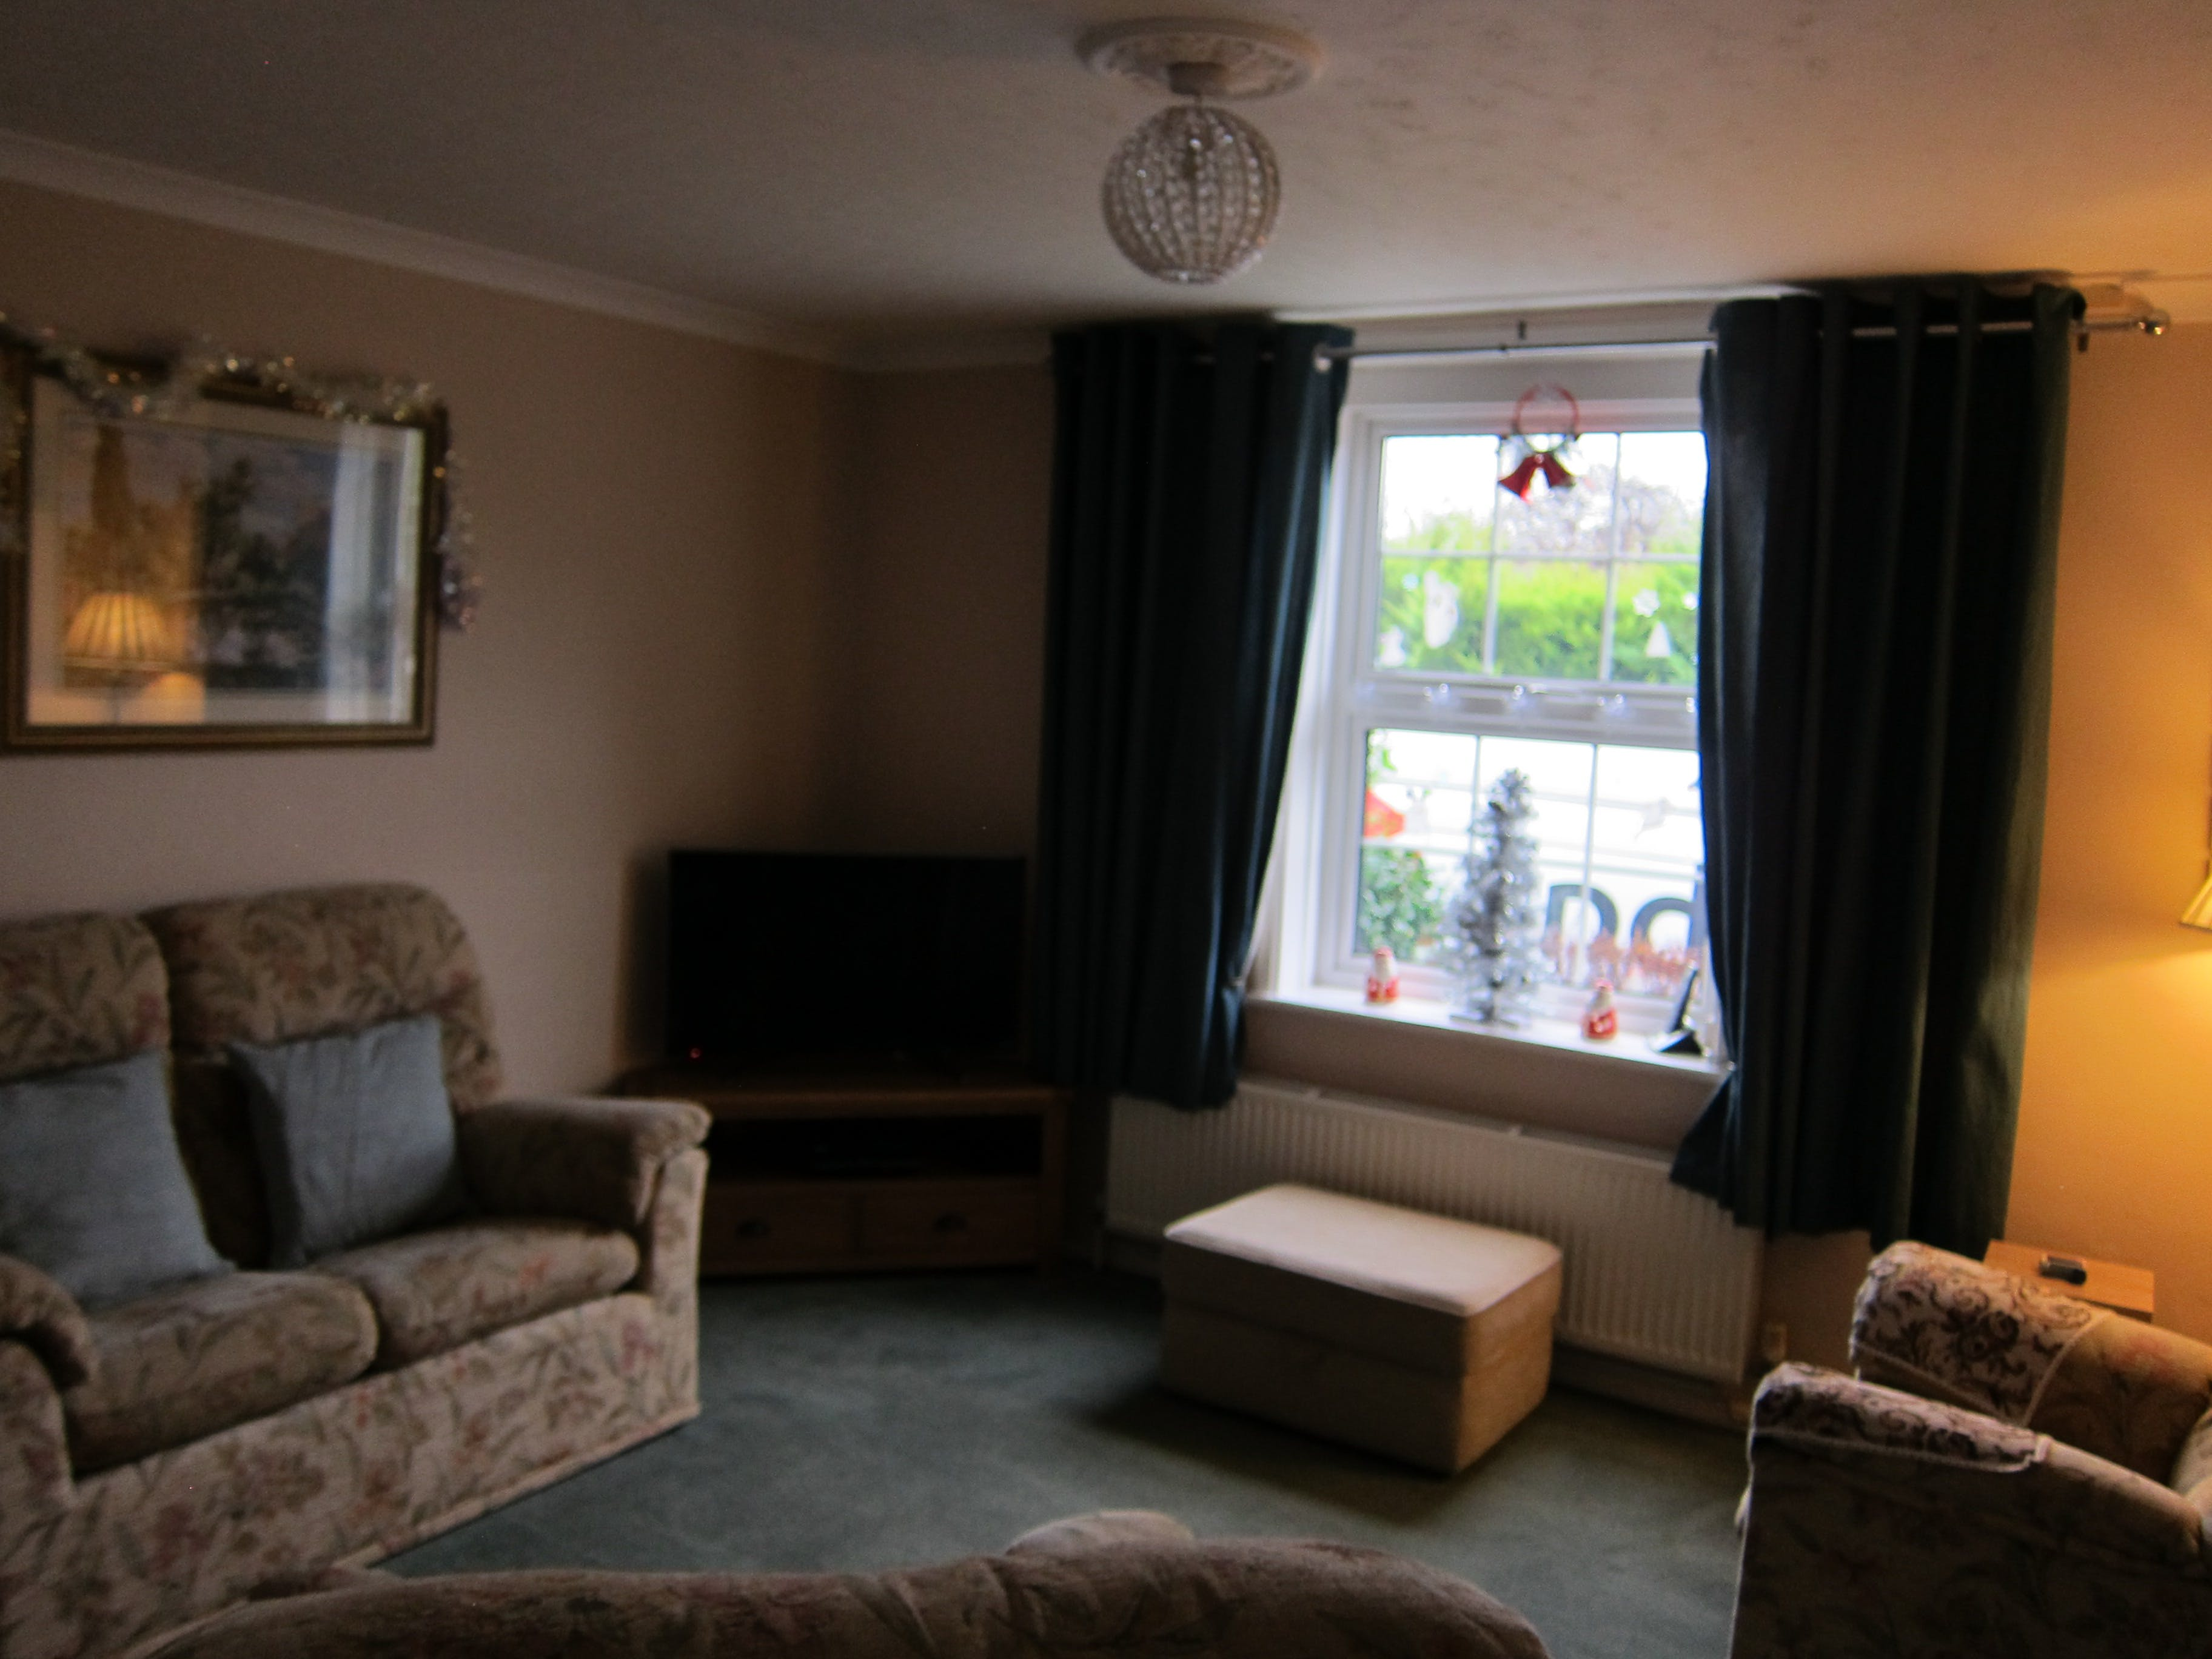 1 Westfields, Off Roke Lane, Godalming, Investments For Sale - IMG_6675.JPG